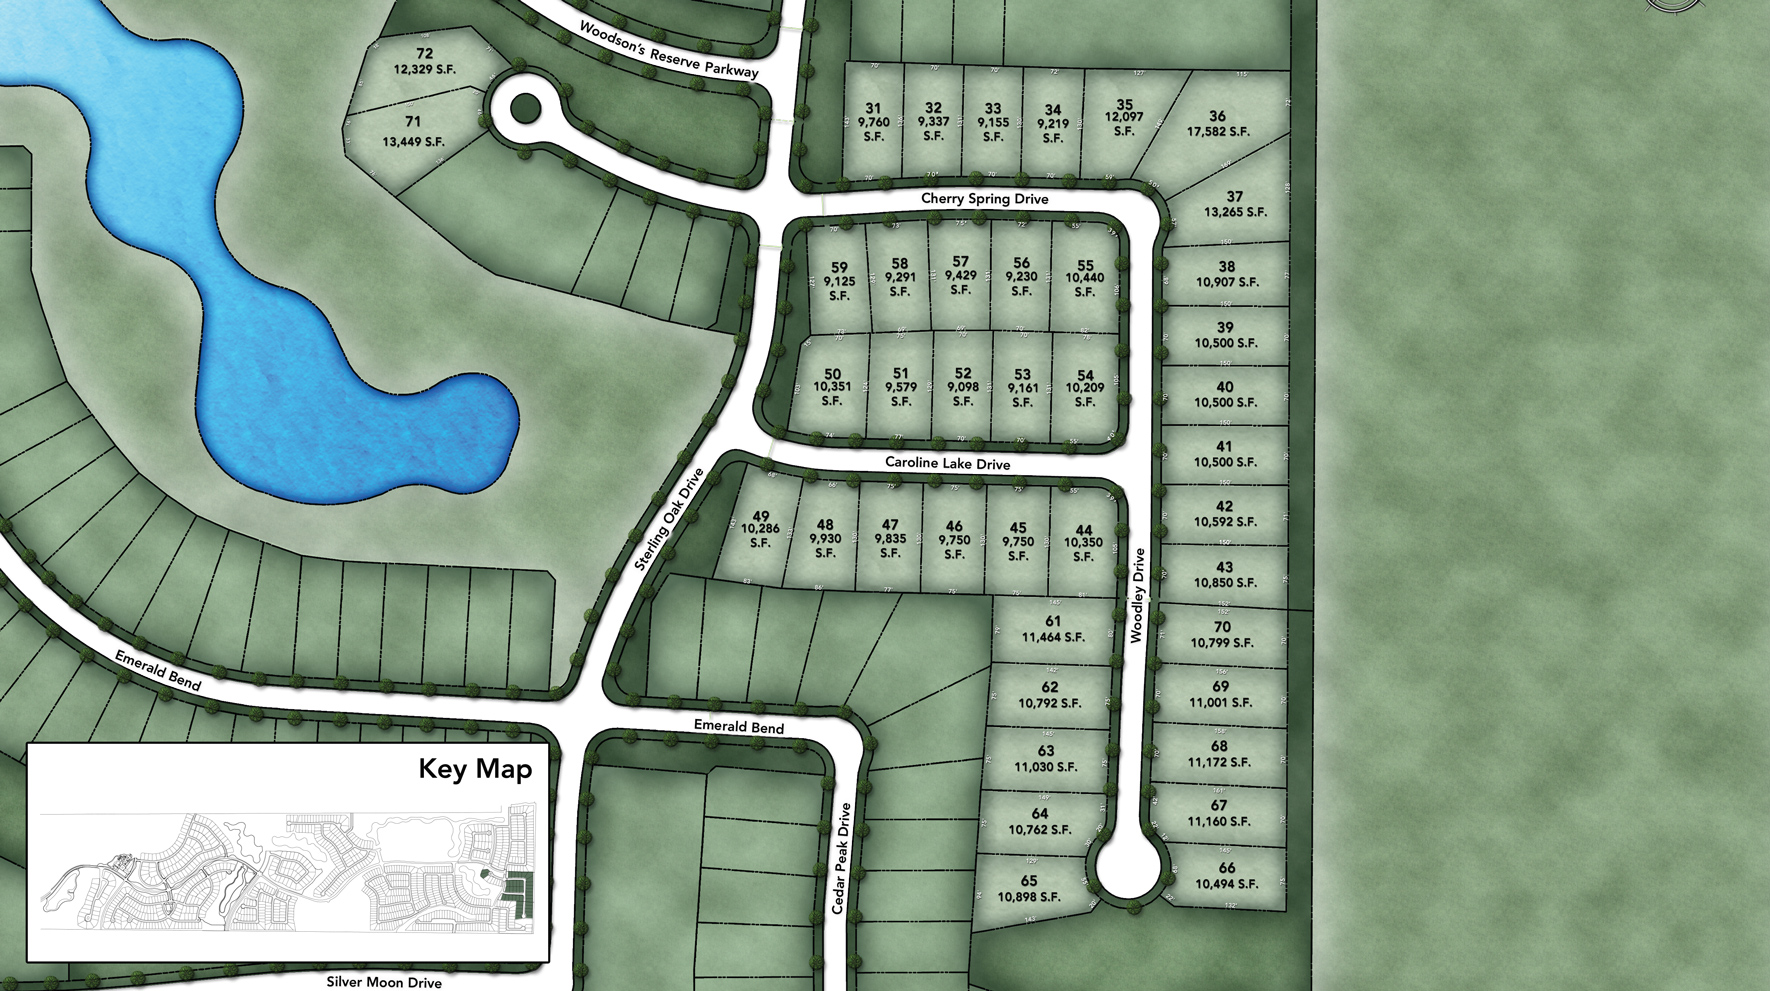 Woodson's Reserve - Executive Collection Site Plan